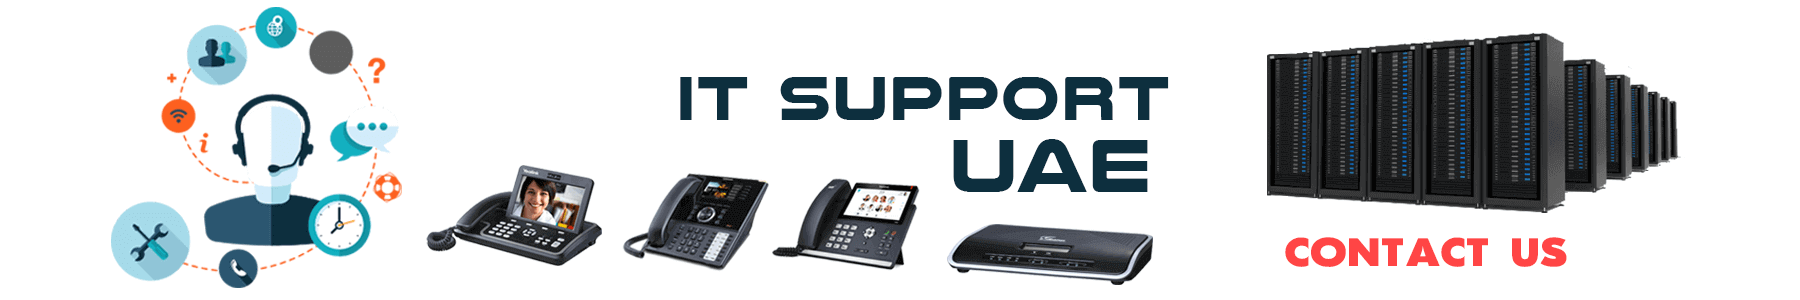 IT-Support-dubai-UAE